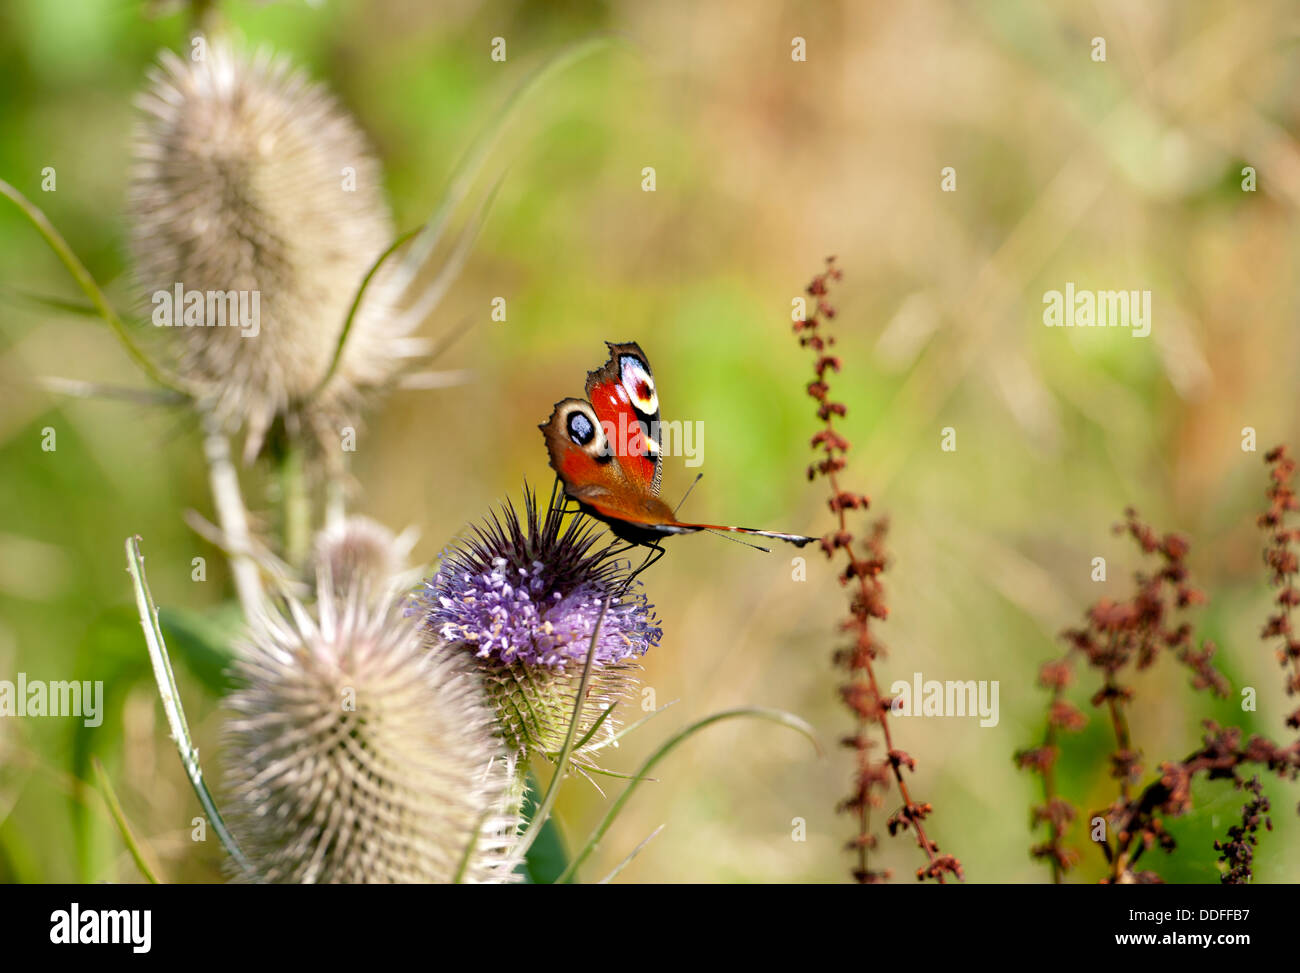 Peacock (Inachis io) butterfly on Teasel flower Stock Photo